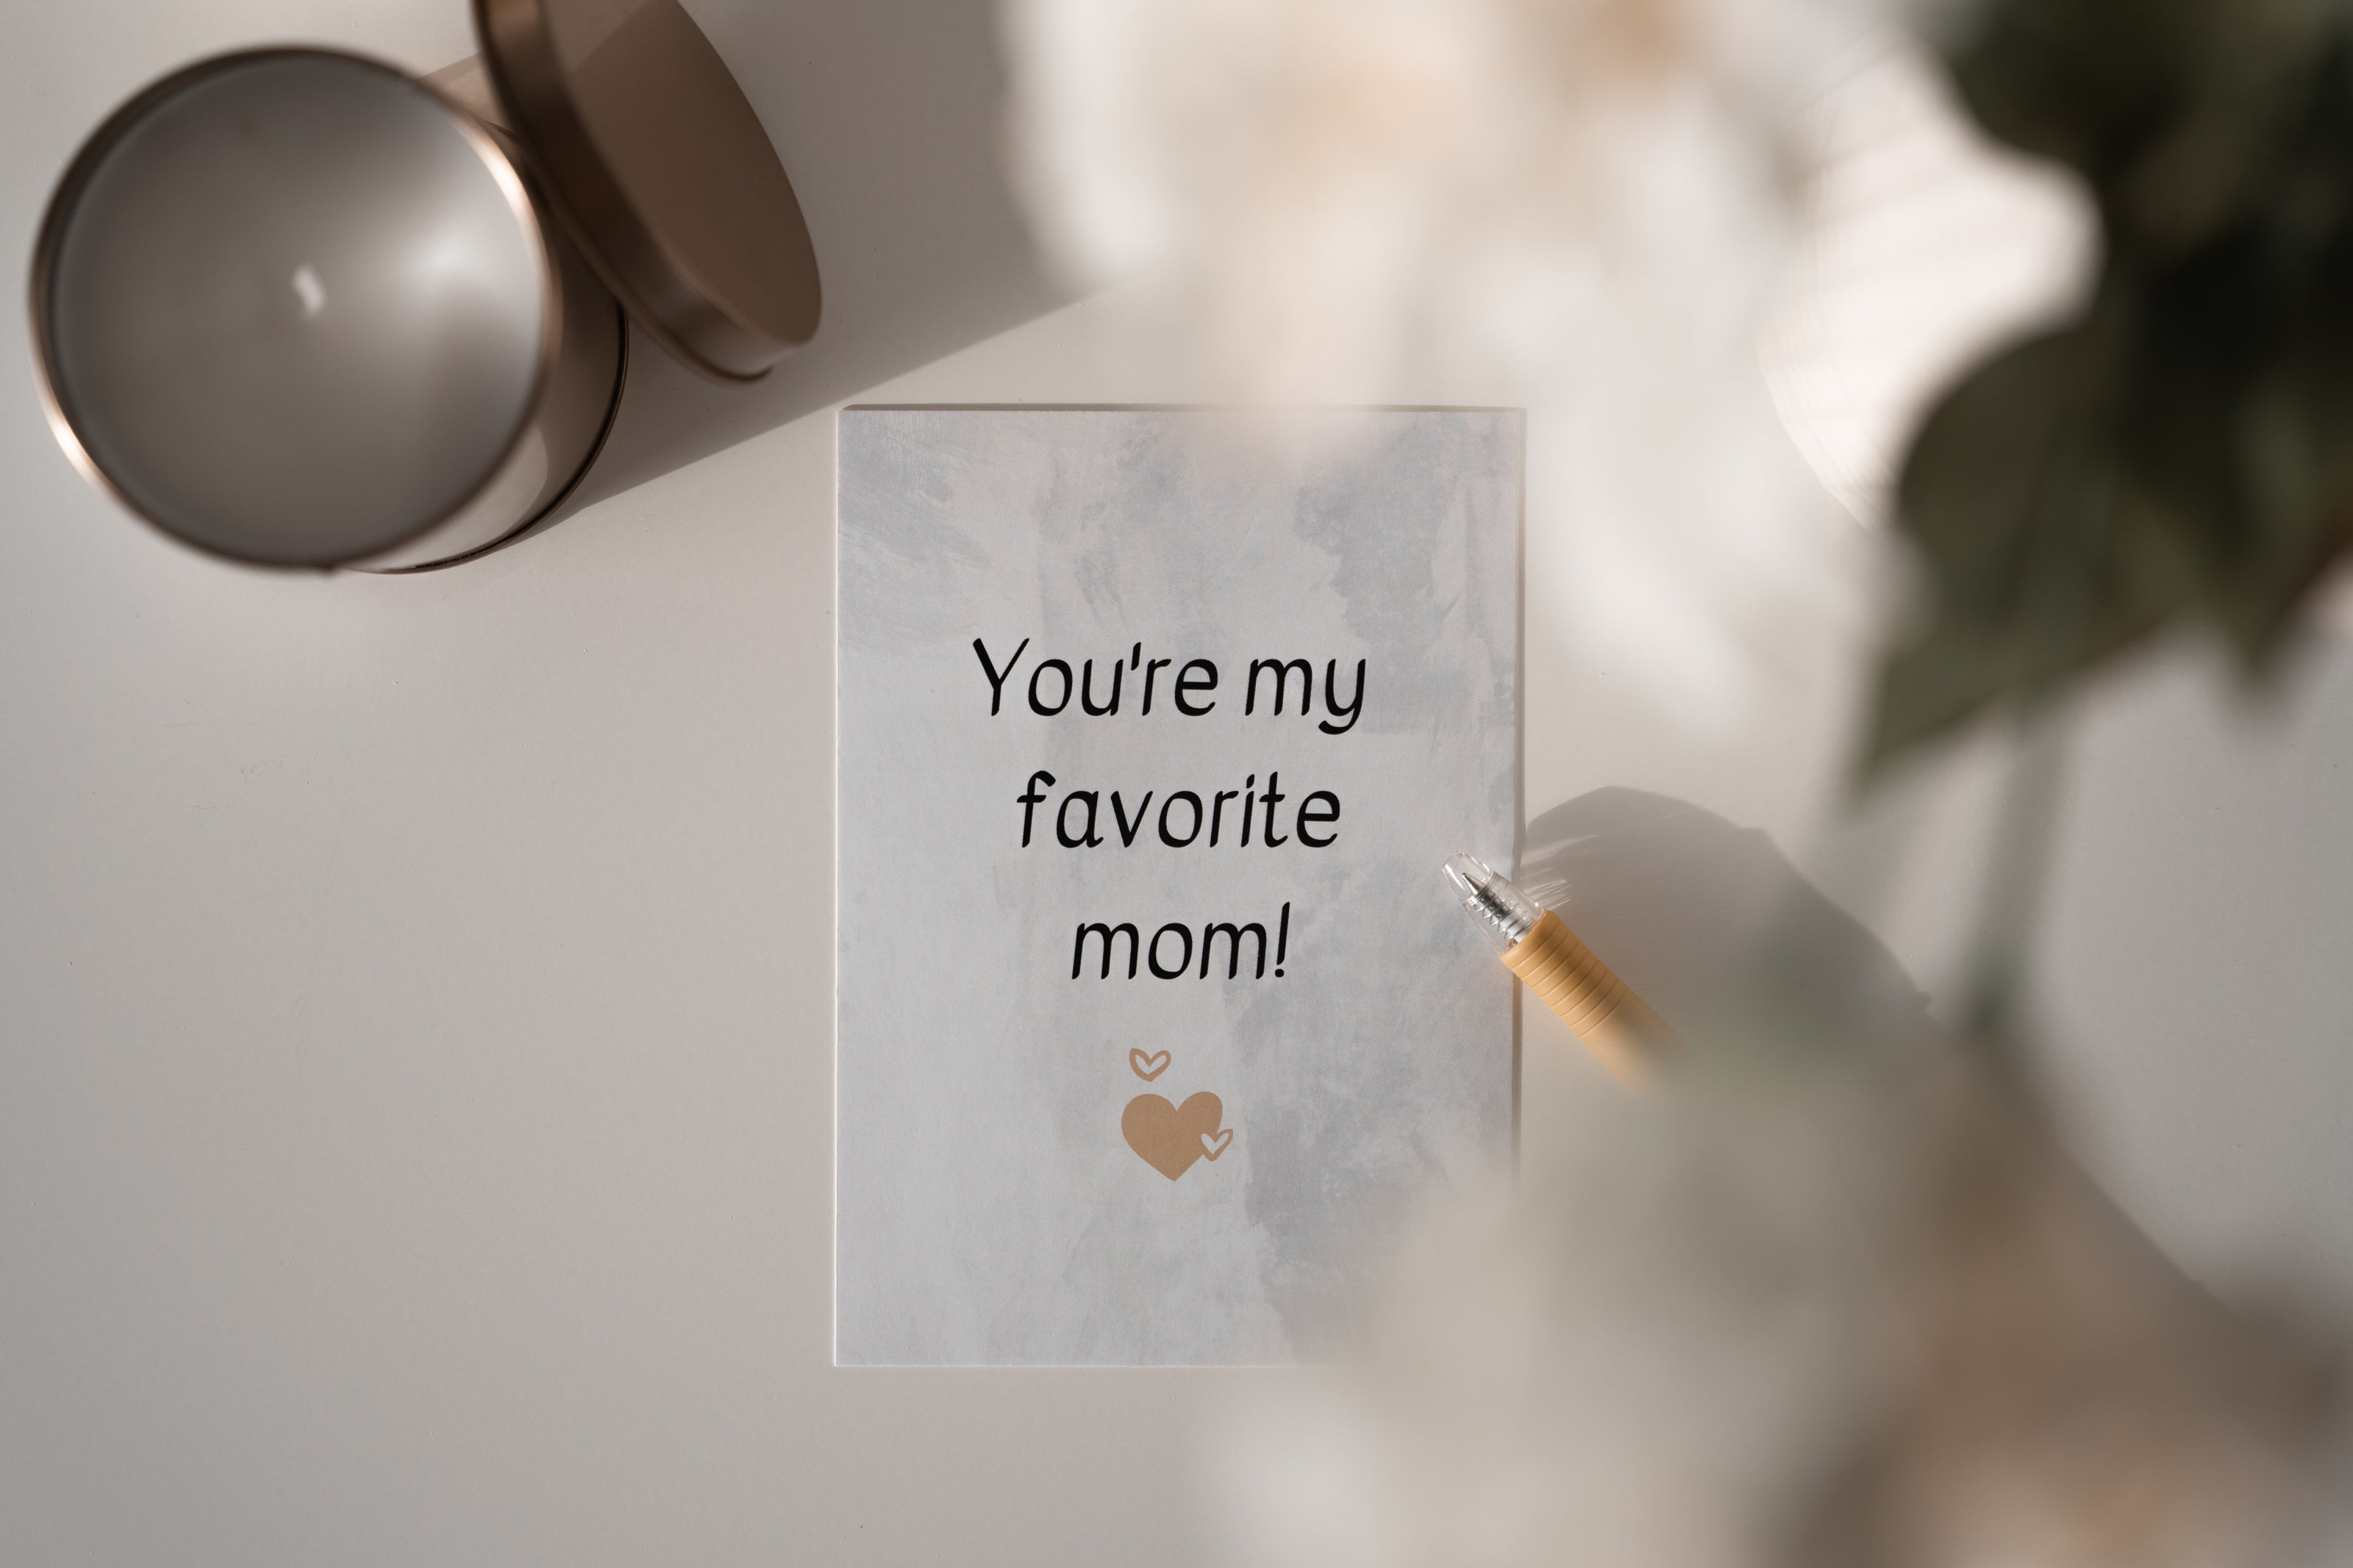 You're my favorite mom!